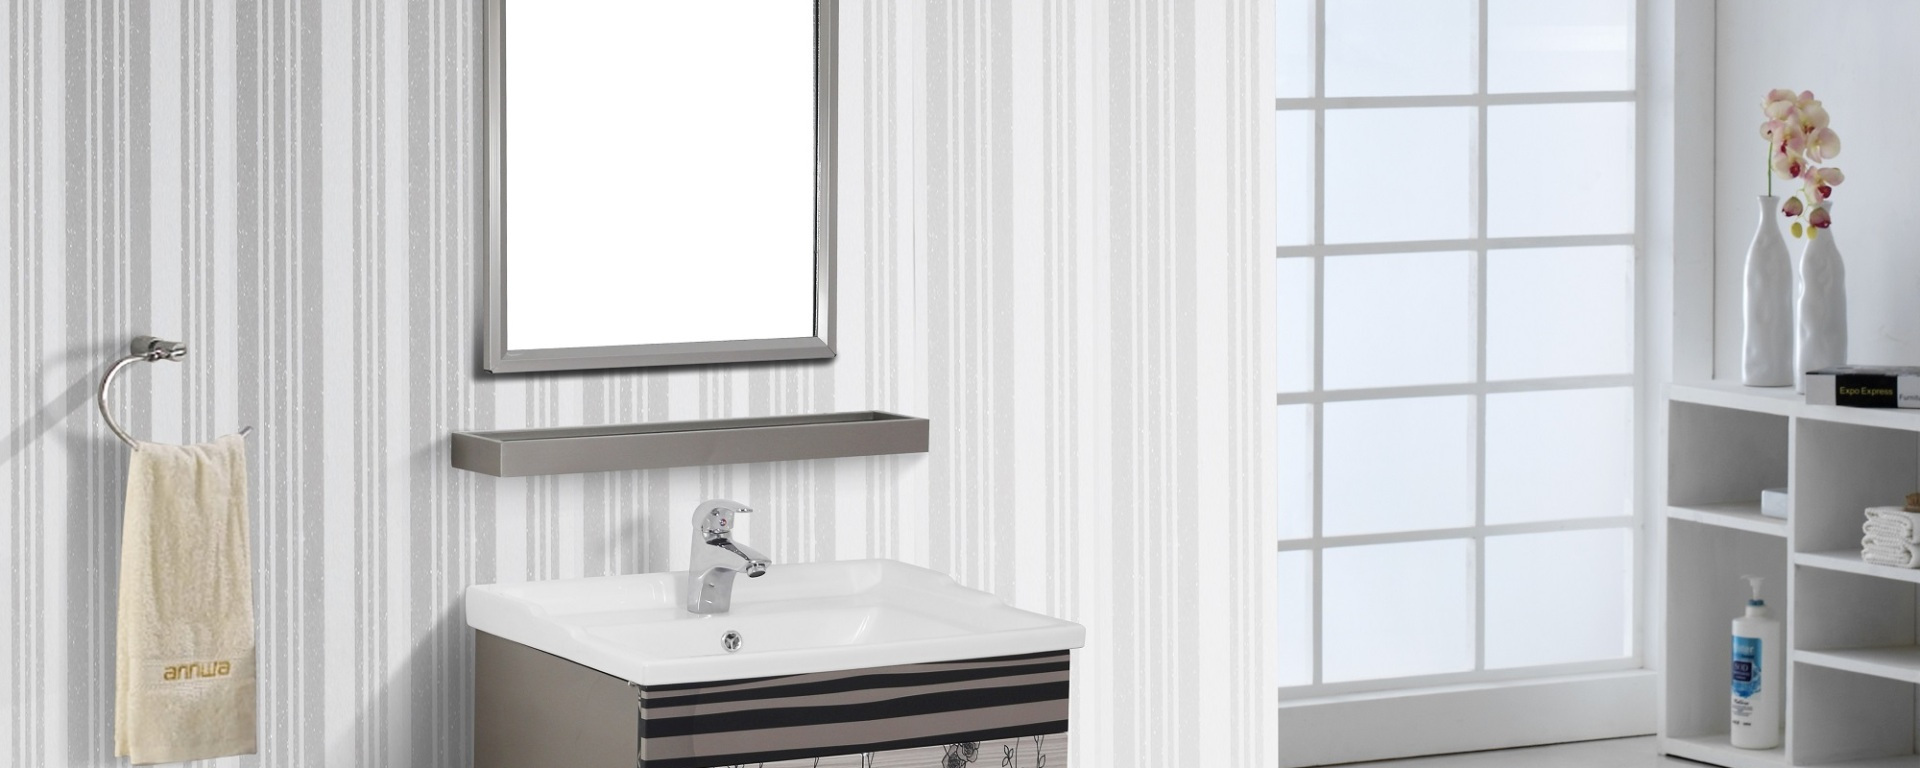 Important Things To Consider While Purchasing Bathroom Cabinets ...